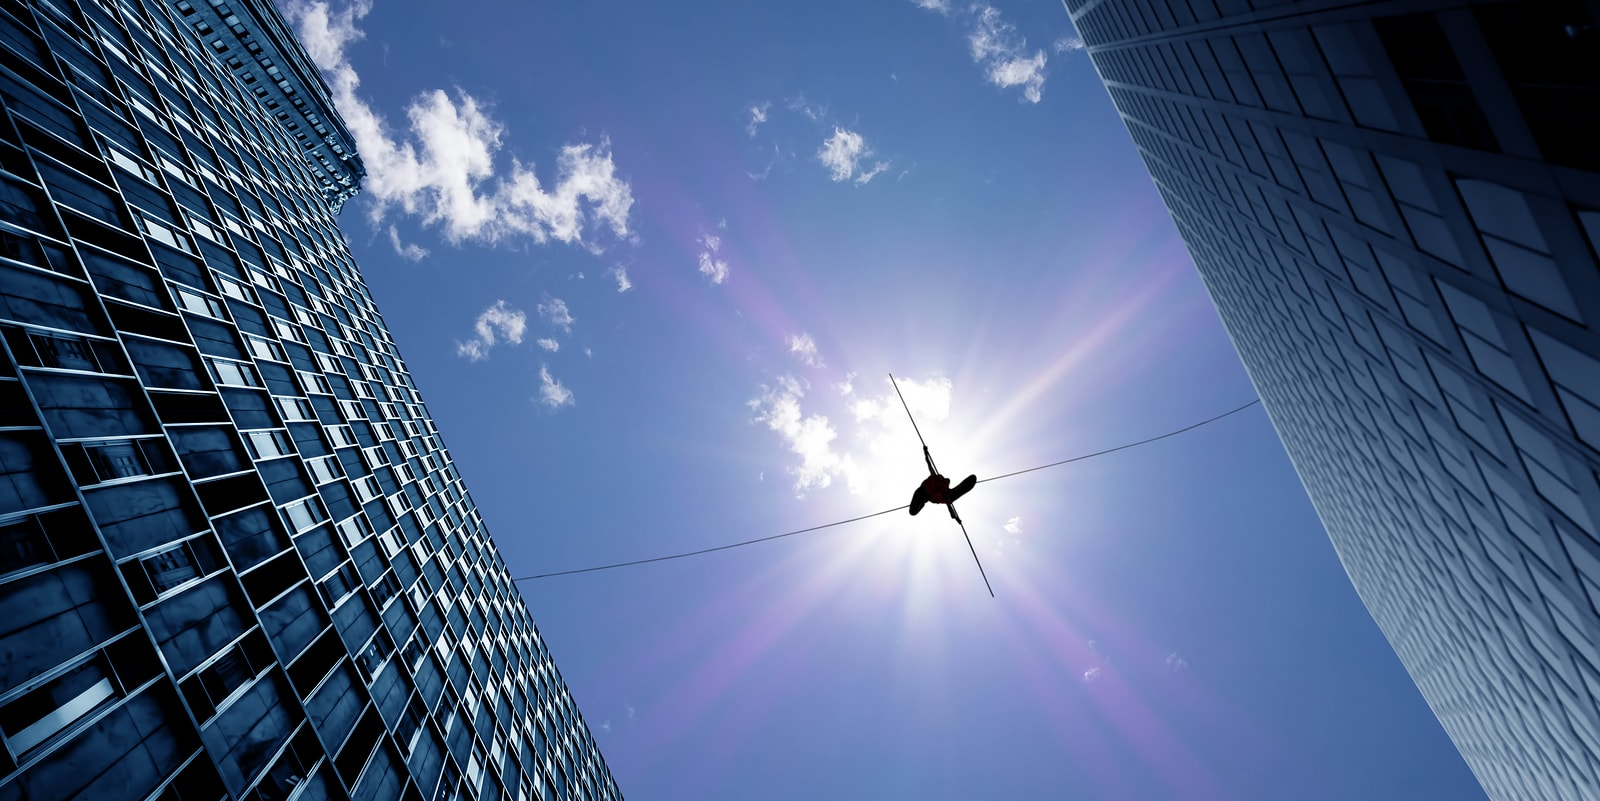 tightrope walker over city